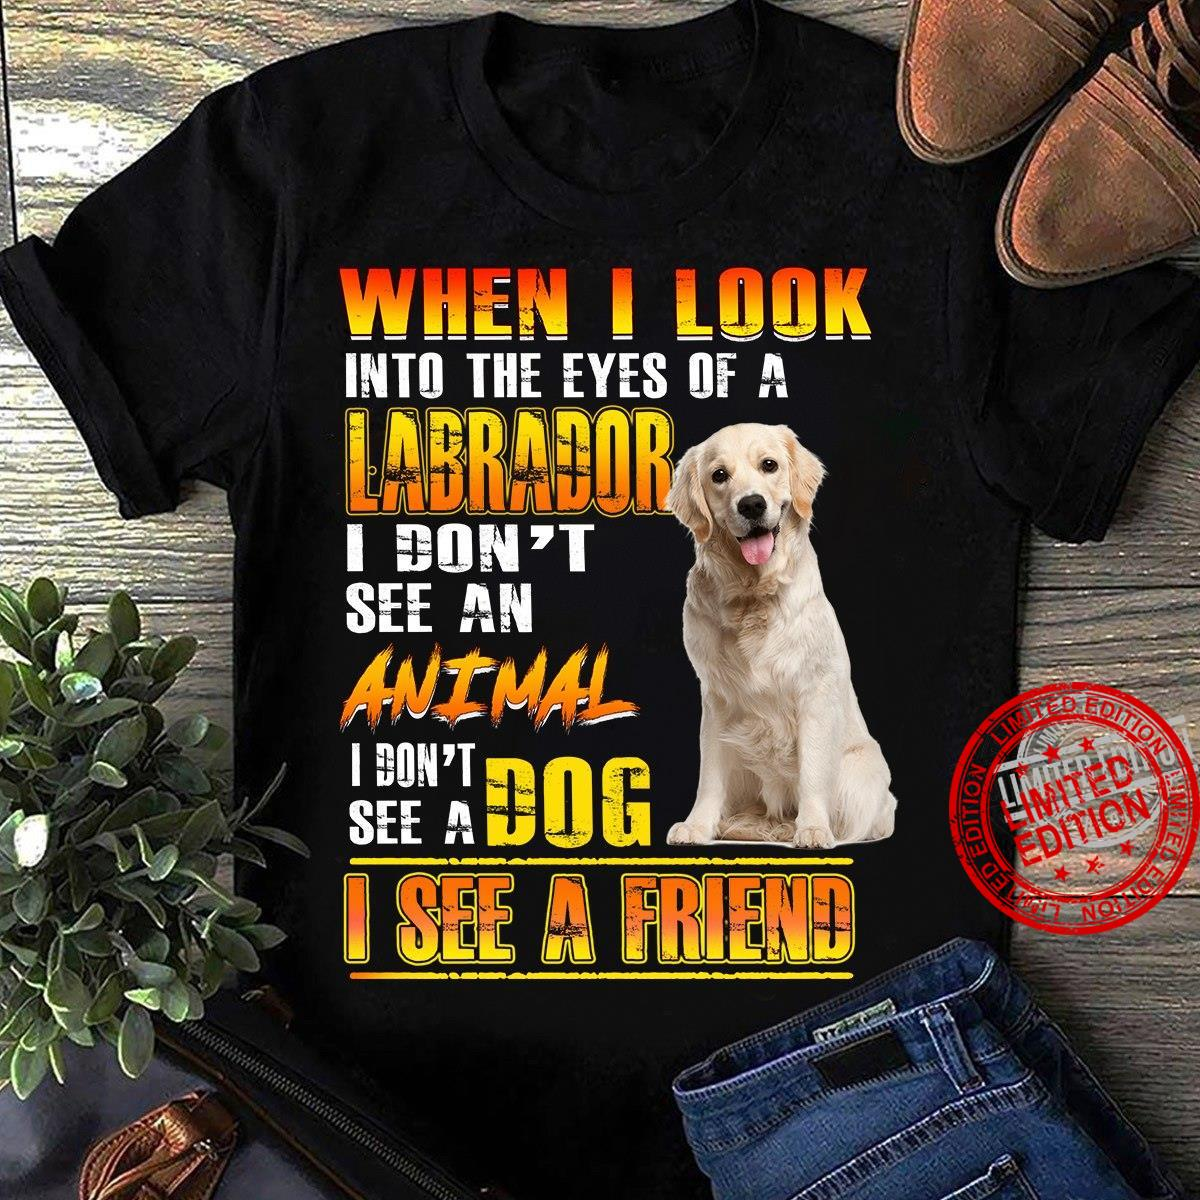 When I Look Into The Eyes Of A Labrador I Don't See An Animal I Don't See A Dog I See A Friend Shirt